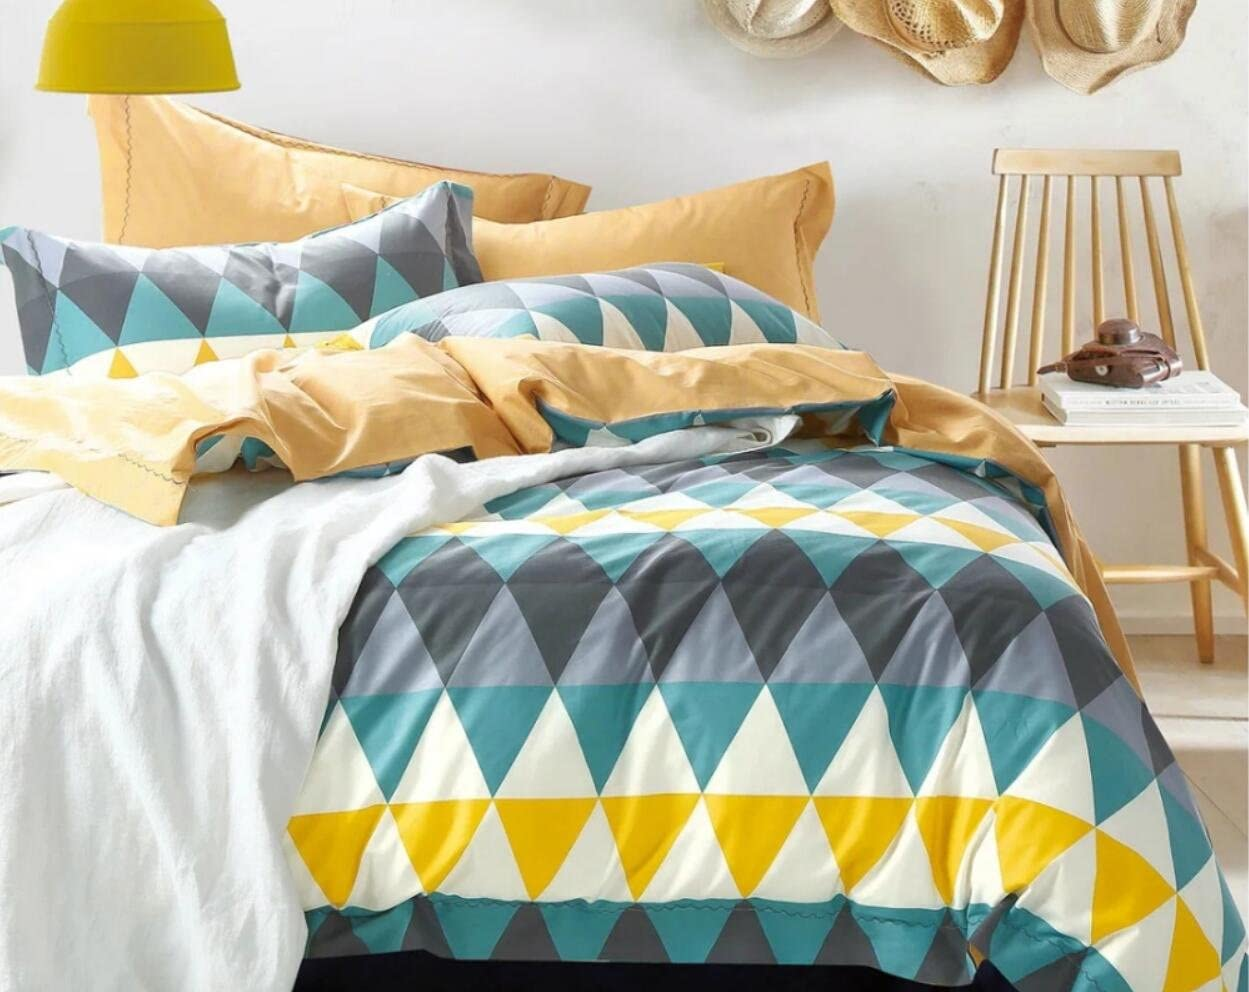 ORACLE DUCKEGG DUVET COVER SET GEOMETRIC BLUE TEAL GREY OFF WHITE TRIANGLE GEO